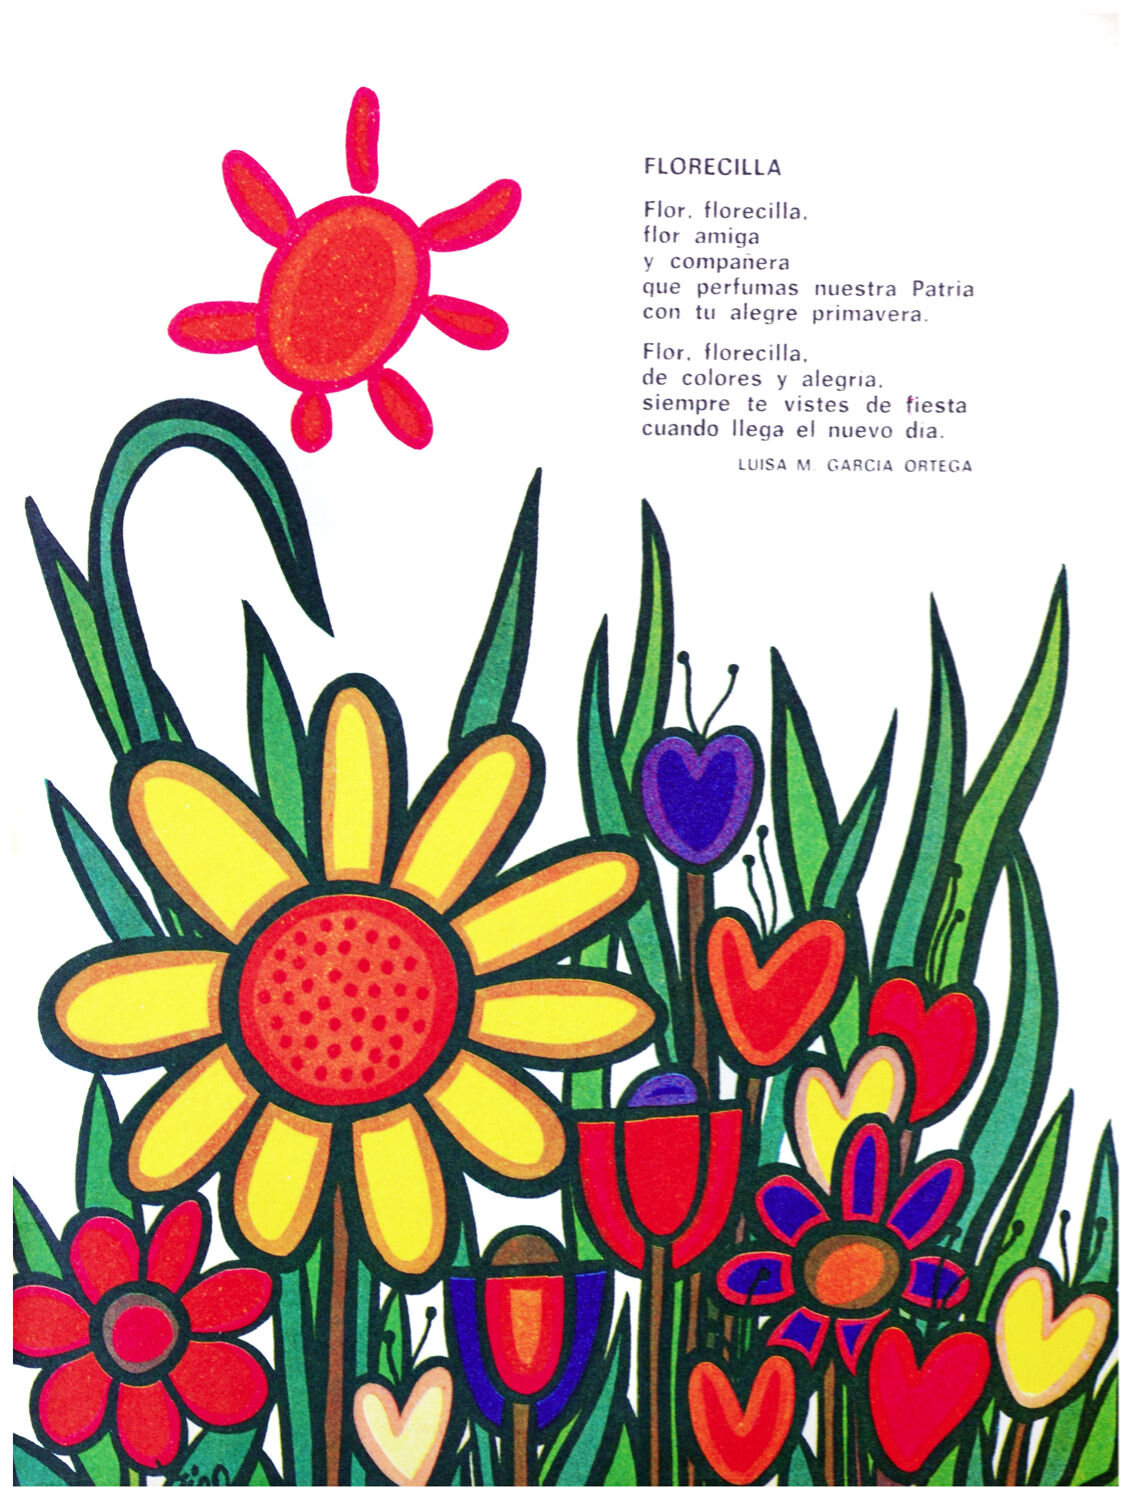 654.Florecilla Coloreeeeful Art Decoration POSTER.Graphics to decorate home office.